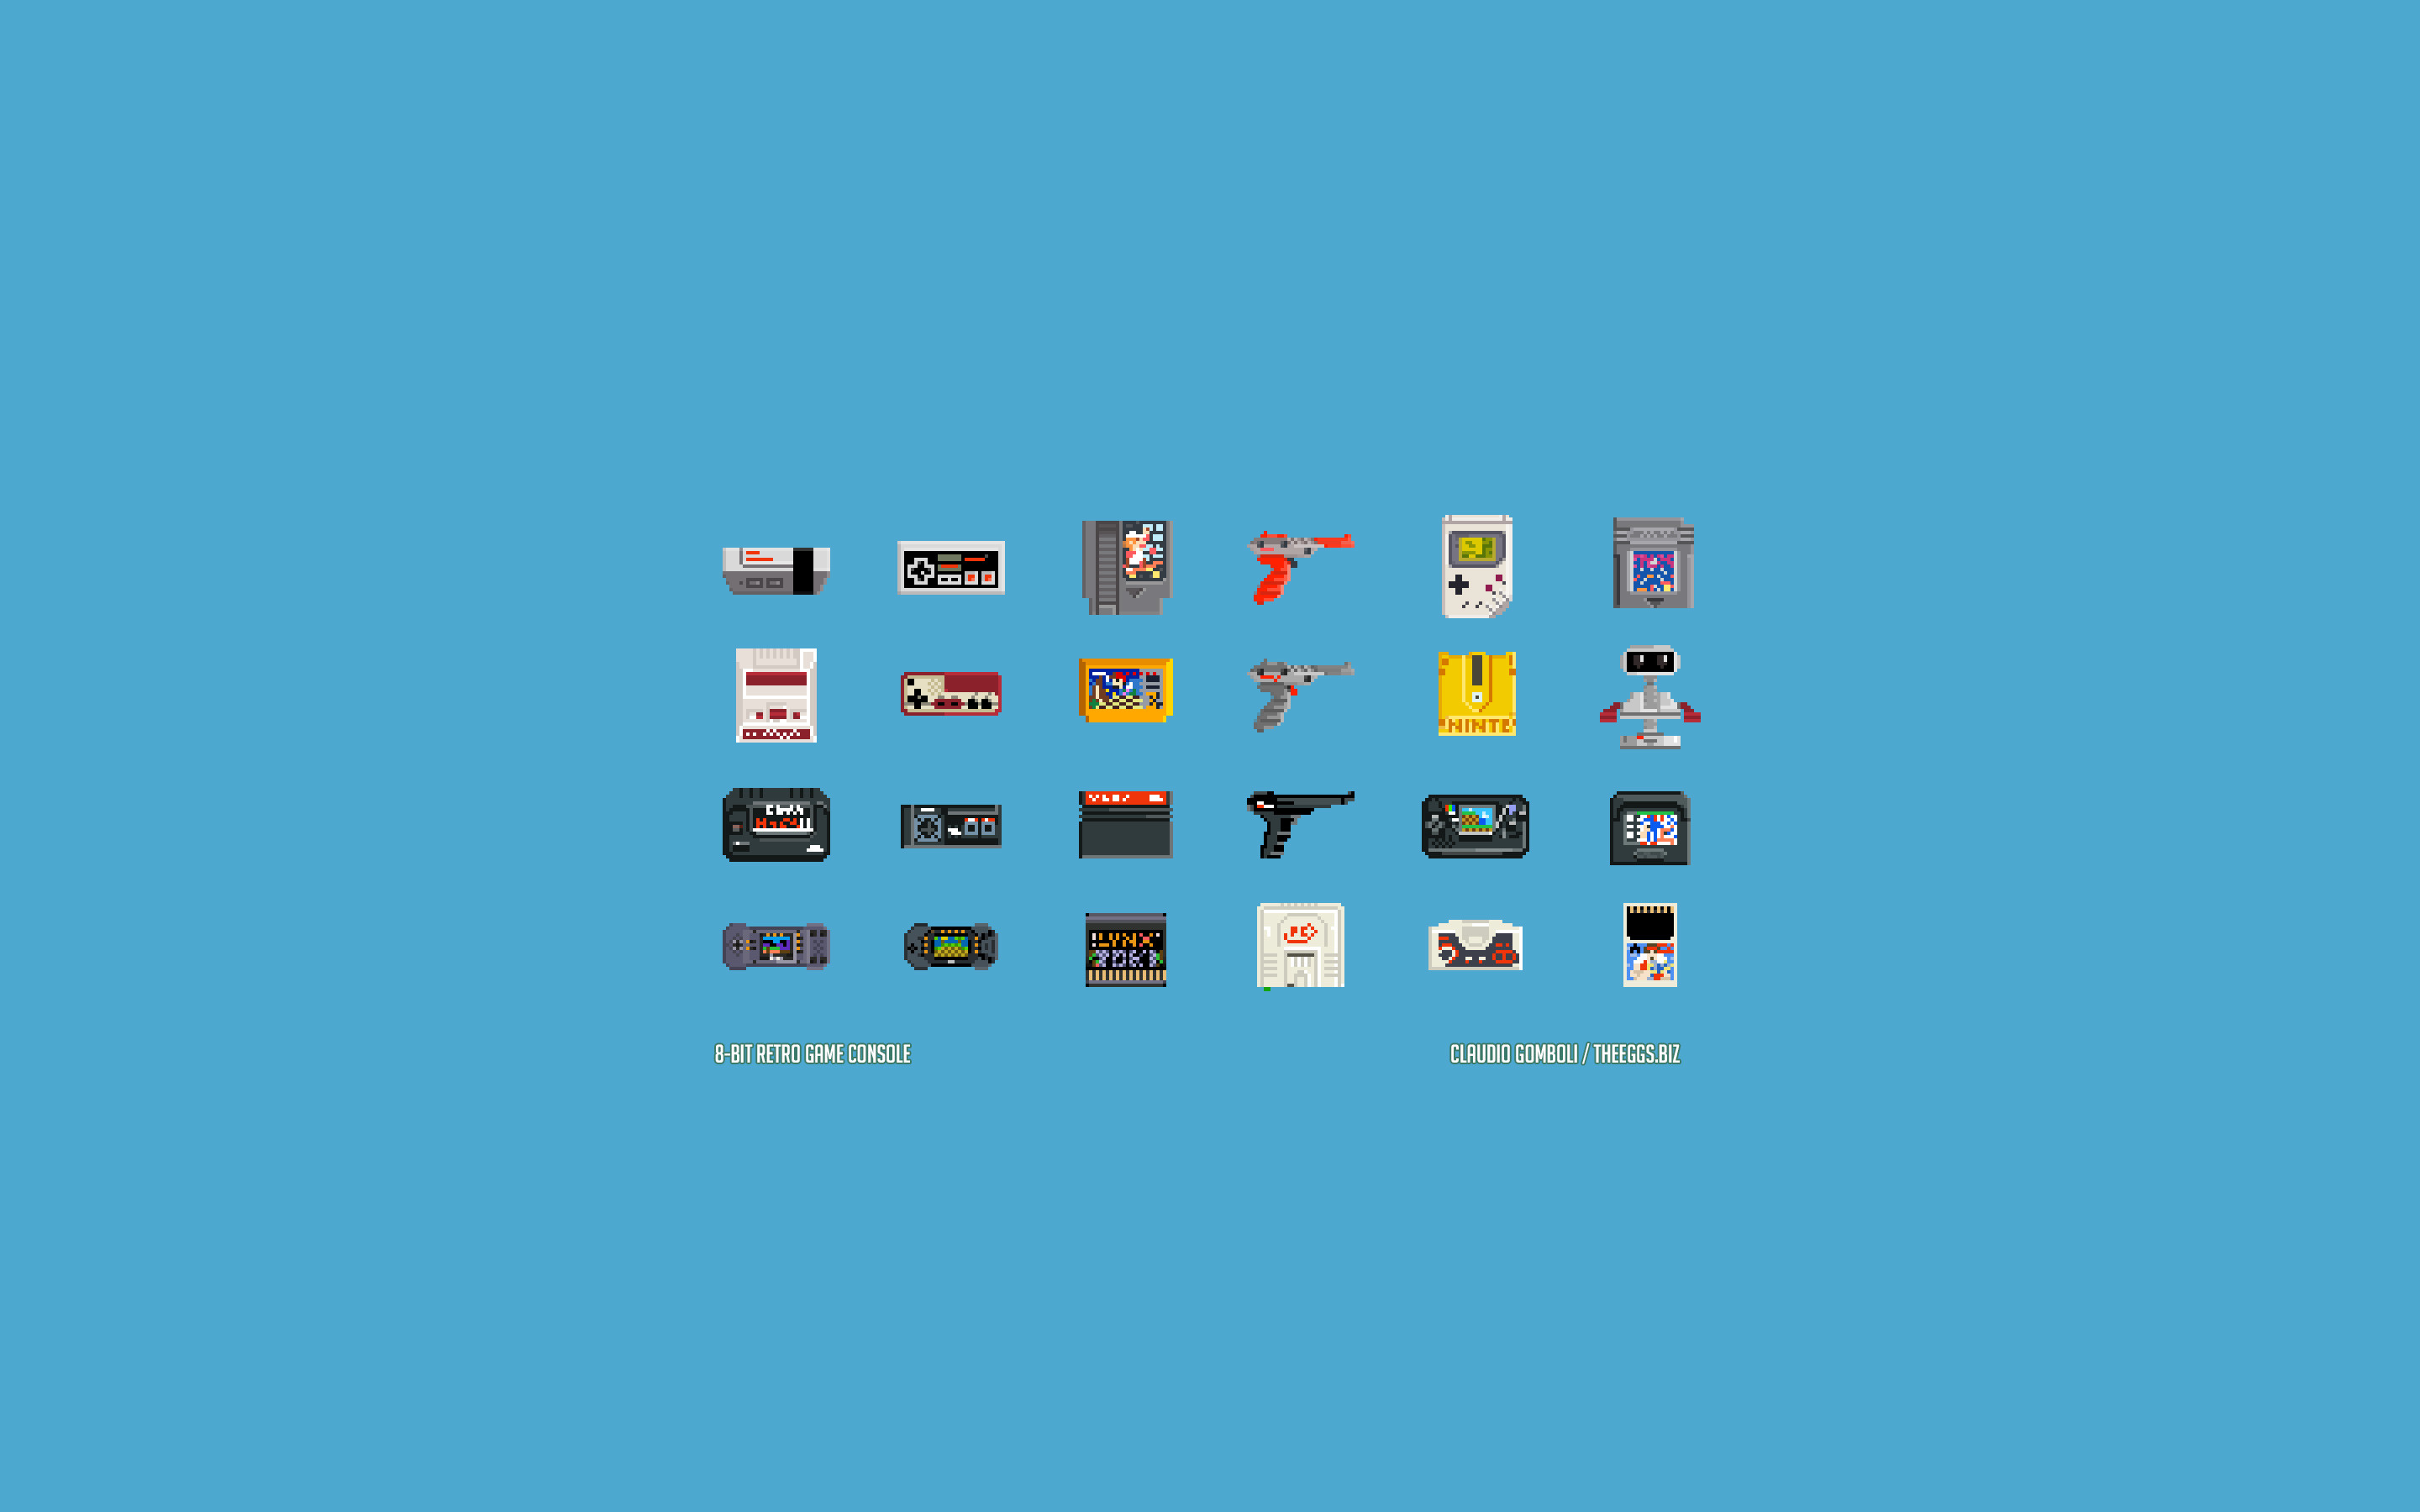 Retro Game Wallpaper Iphone Images & Pictures – Becuo